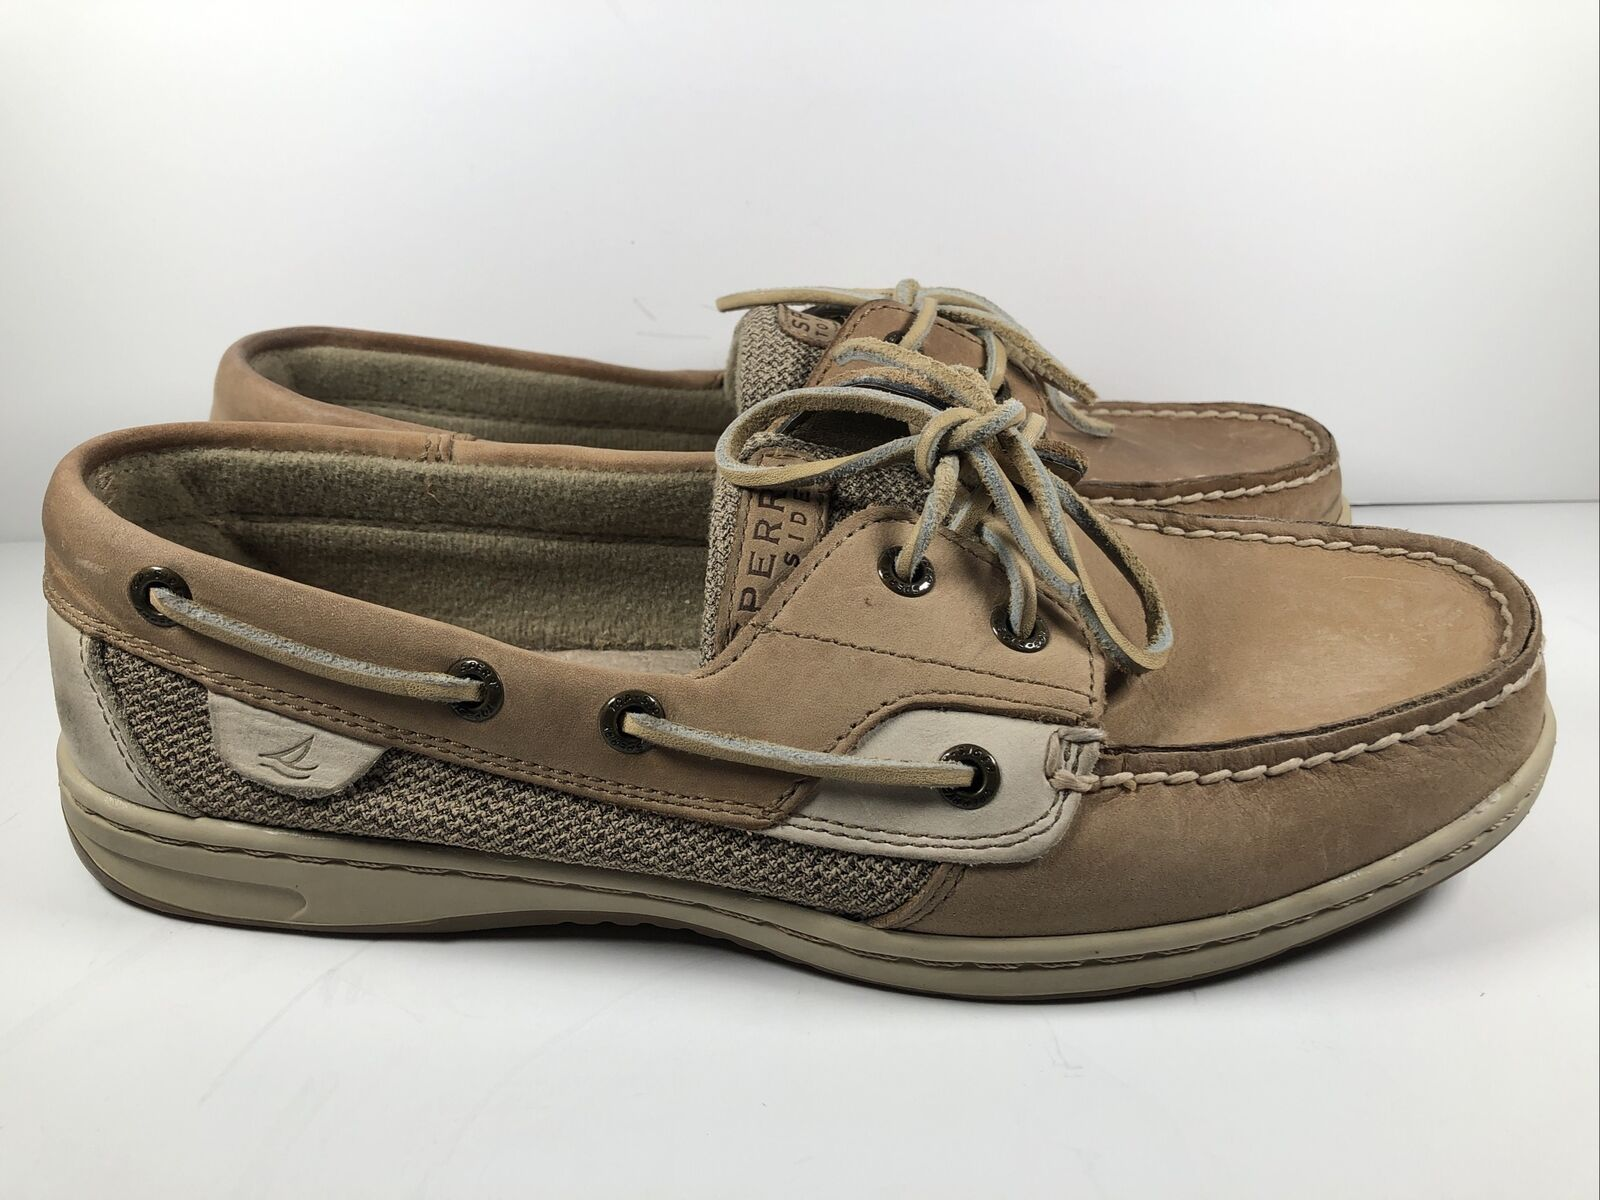 Sperry Bluefish Boat Shoes - Women's Size 9.5M - Oat